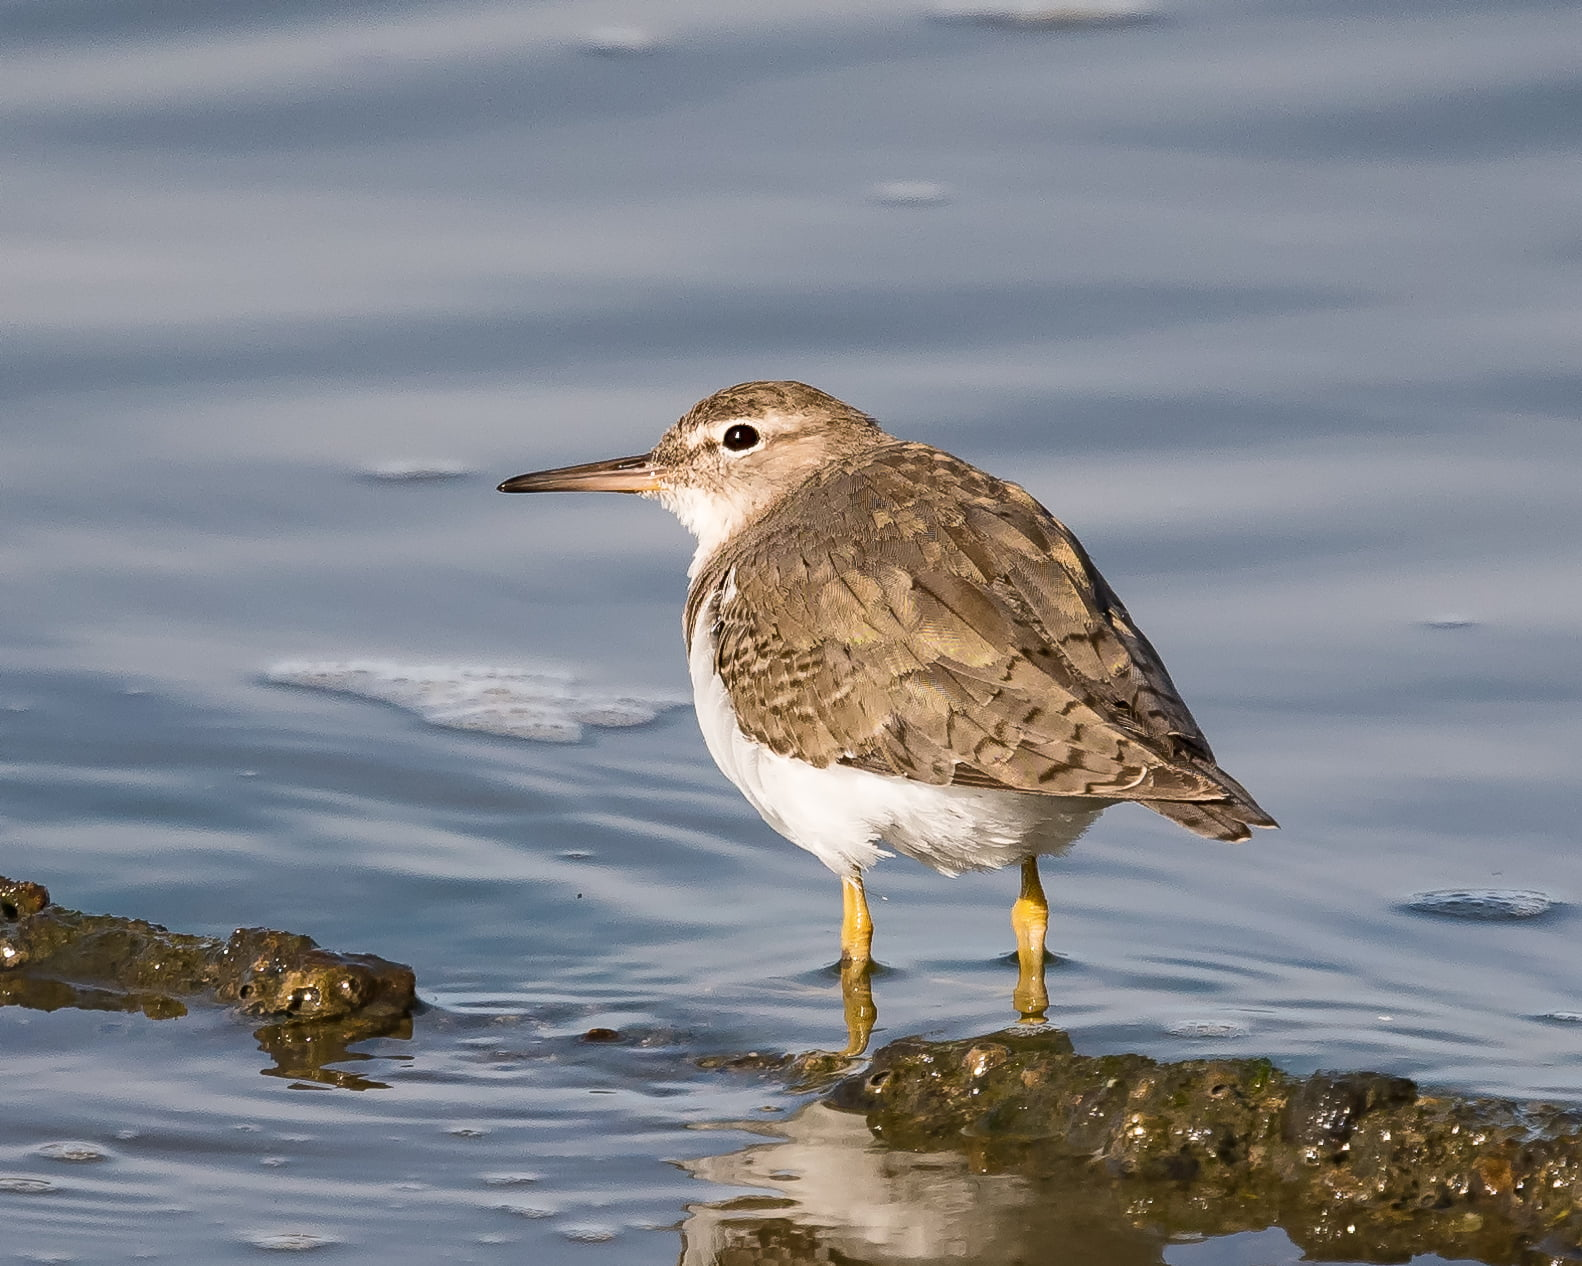 White and brown bird on water, spotted sandpiper HD